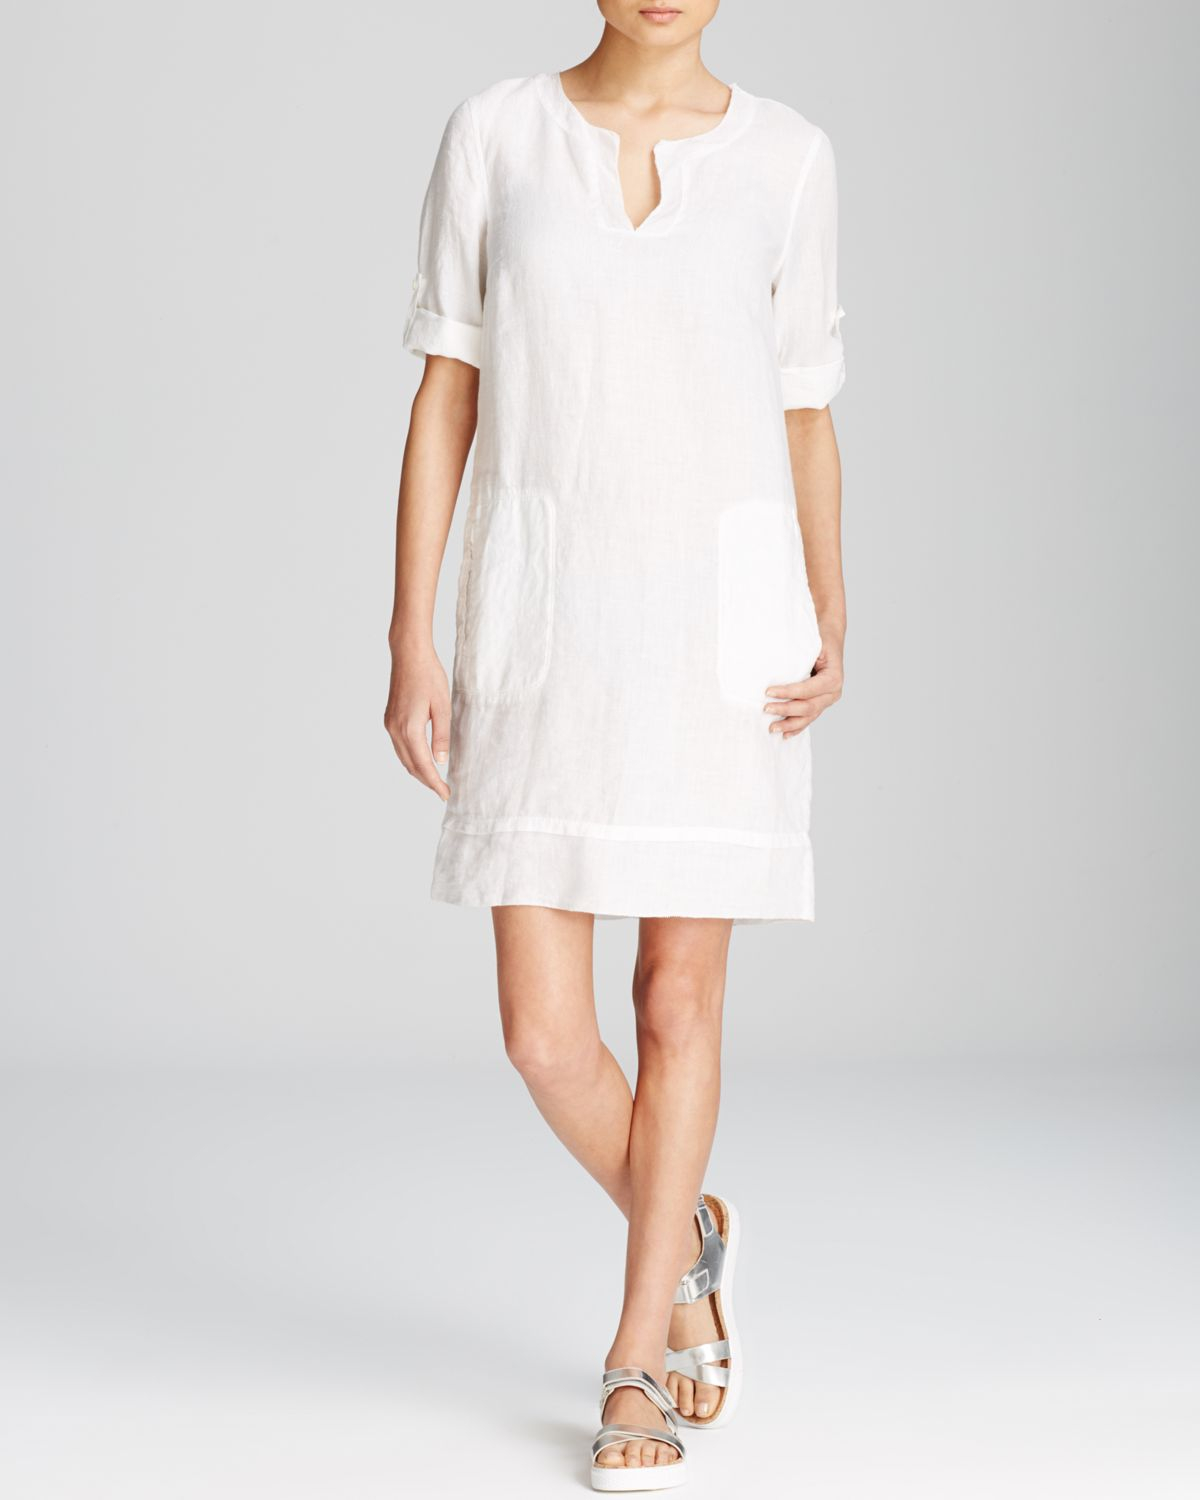 a99f7feb6a2 Gallery. Previously sold at  Bloomingdale s · Women s Tunic Dresses Women s White  Linen ...